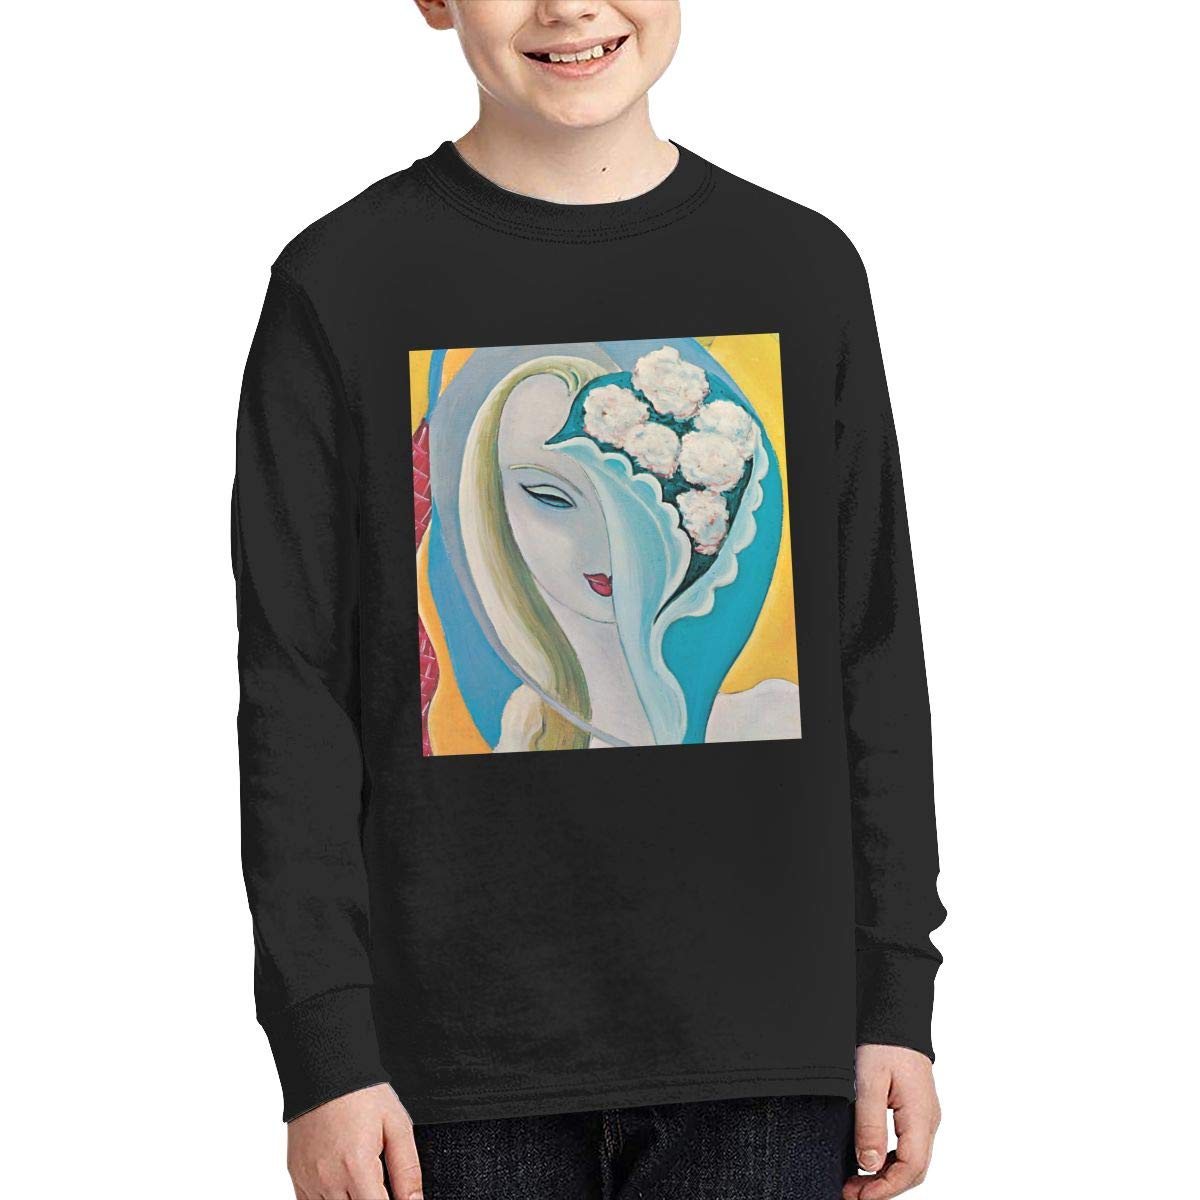 MichaelHazzard Derek /& The Dominos Youth Comfortable Long Sleeve Crewneck Tee T-Shirt for Boys and Girls